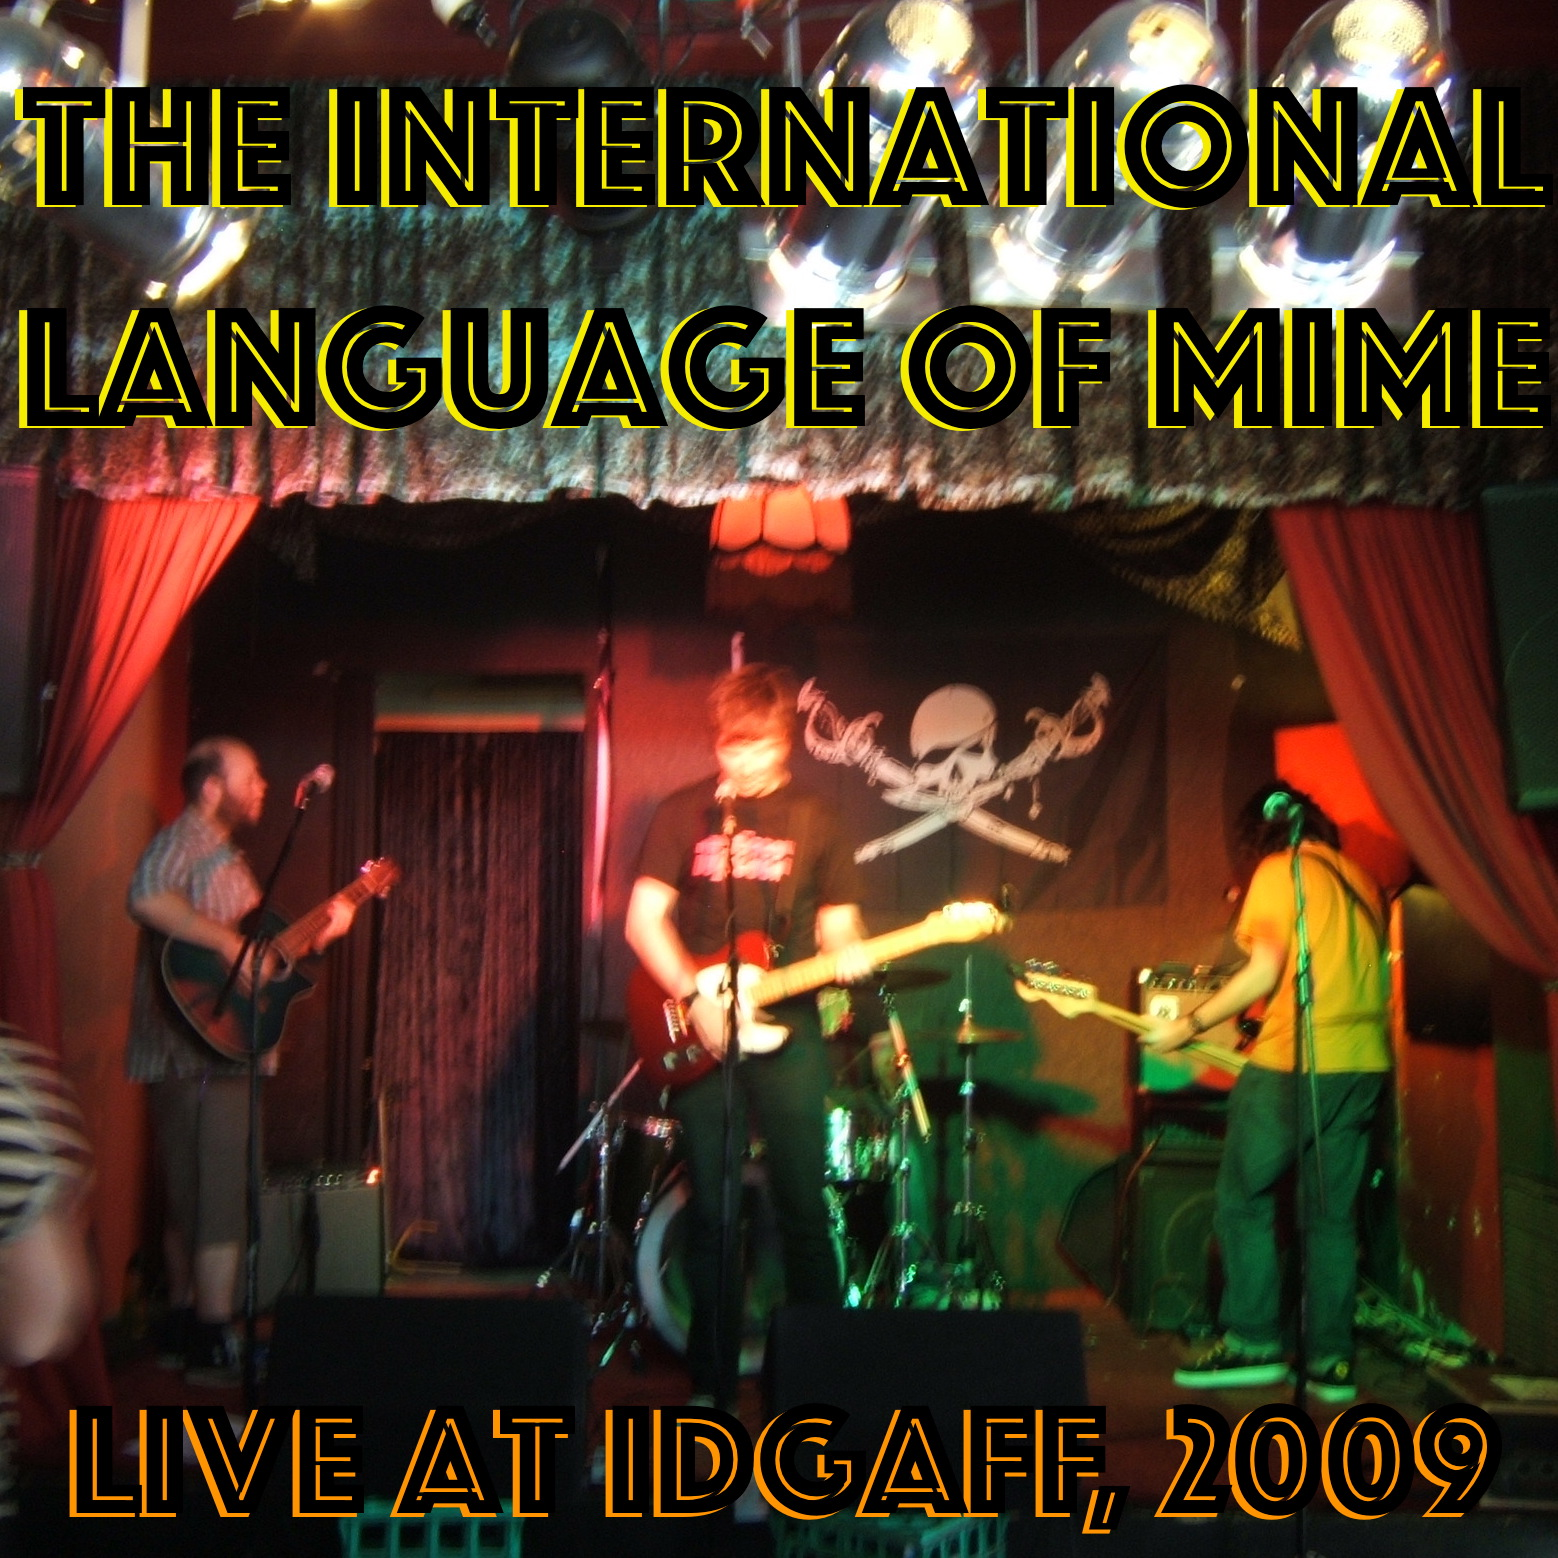 The International Language of Mime live at IDGAFF, 2009. The picture shows the band on stage.